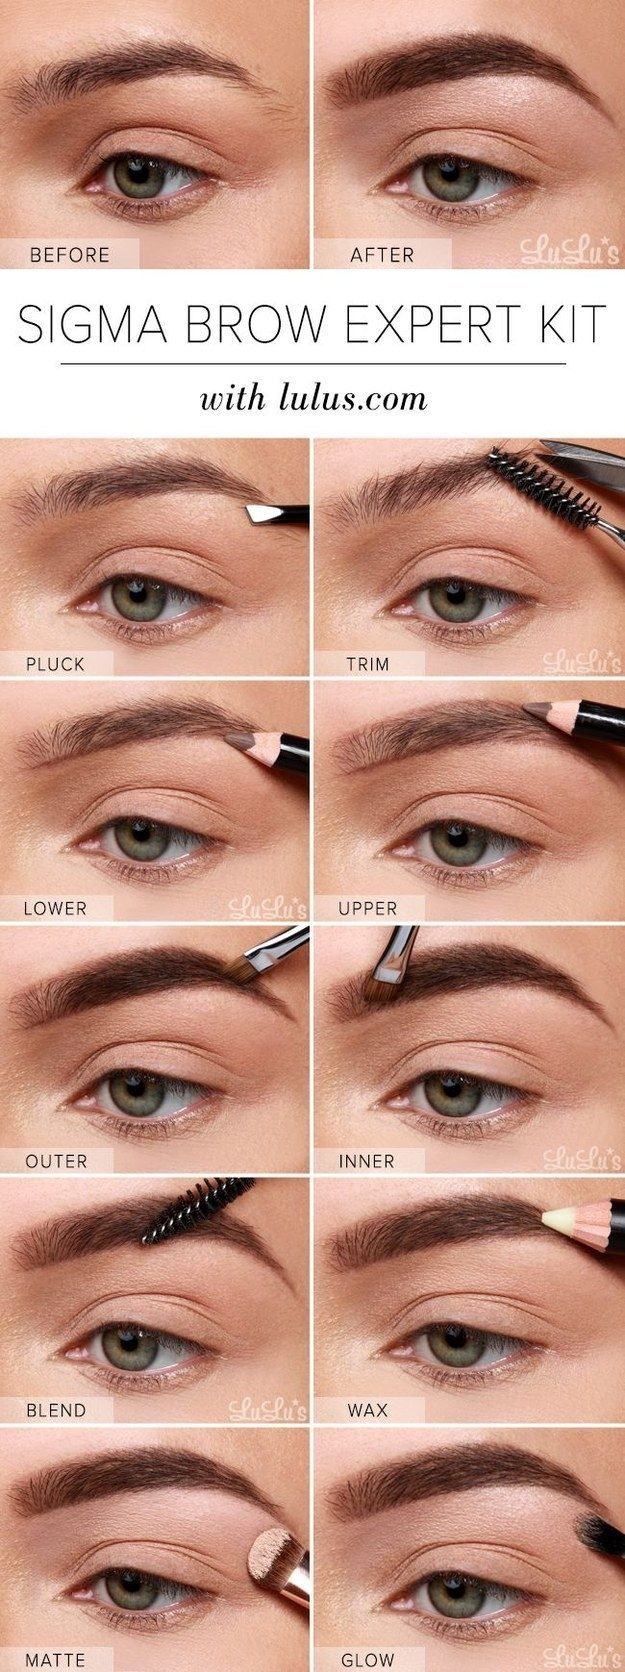 Here's a basic step-by-step chart on how to actually do your eyebrows.